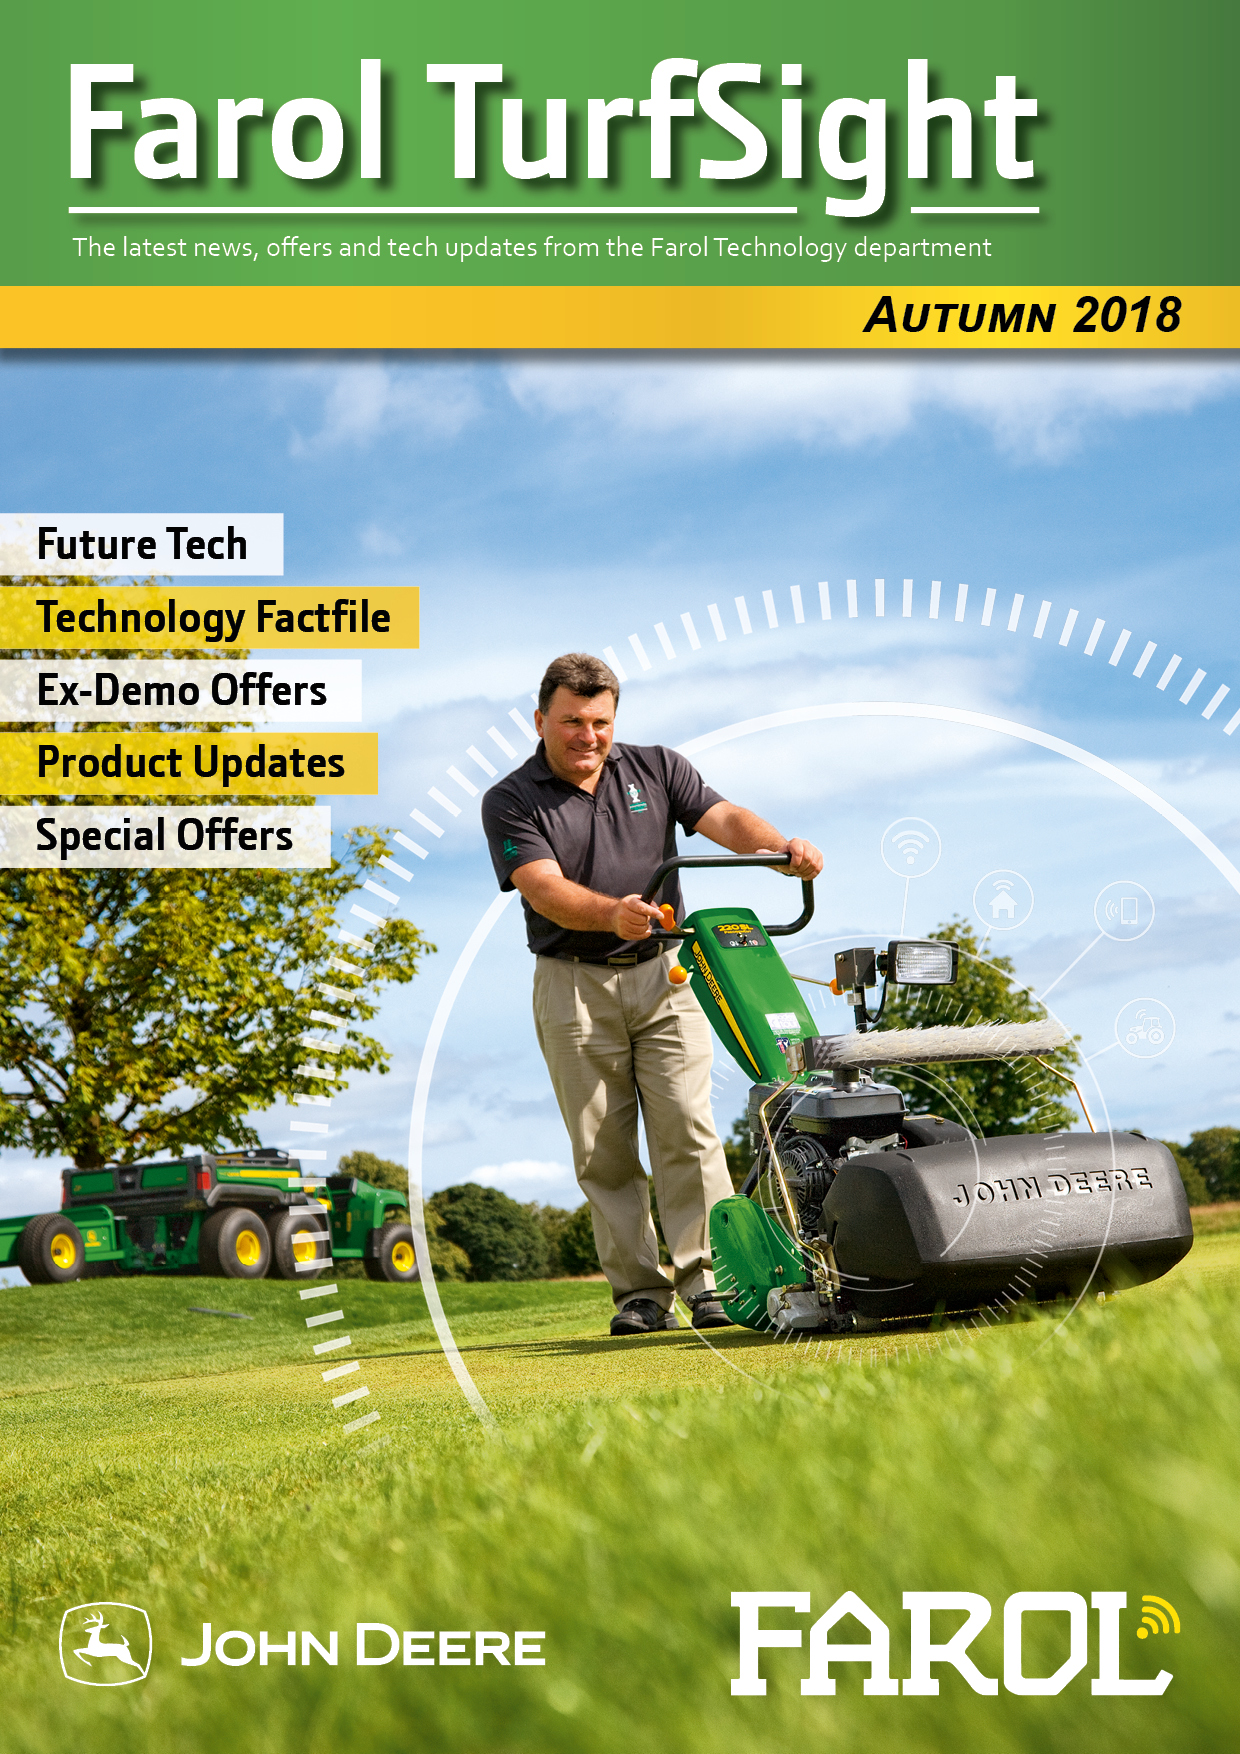 Farol TurfSight Autumn 2018